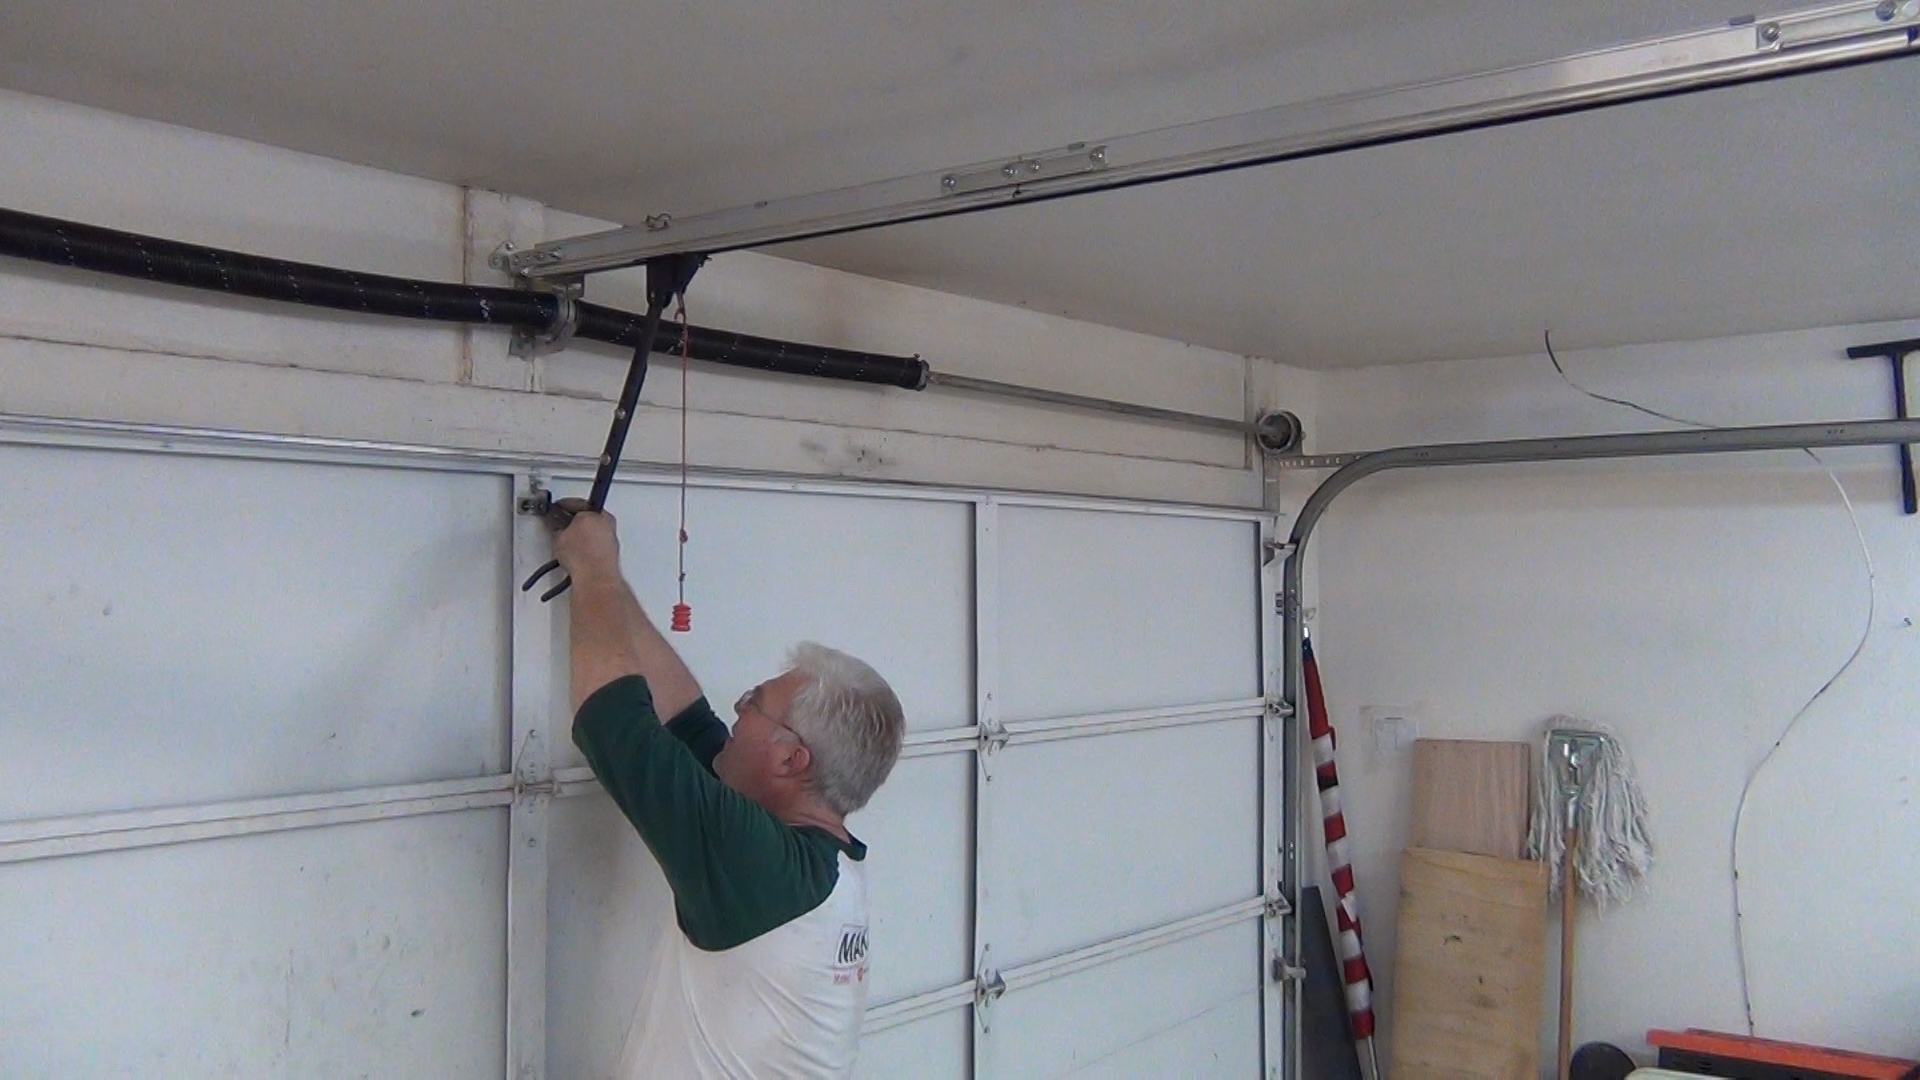 Repair tulsa ok tulsa garage door repair service broken springs - Garage Door Installation In Nj With Competitive Installation Cost Garage Door Installation Lymitrio Gallery